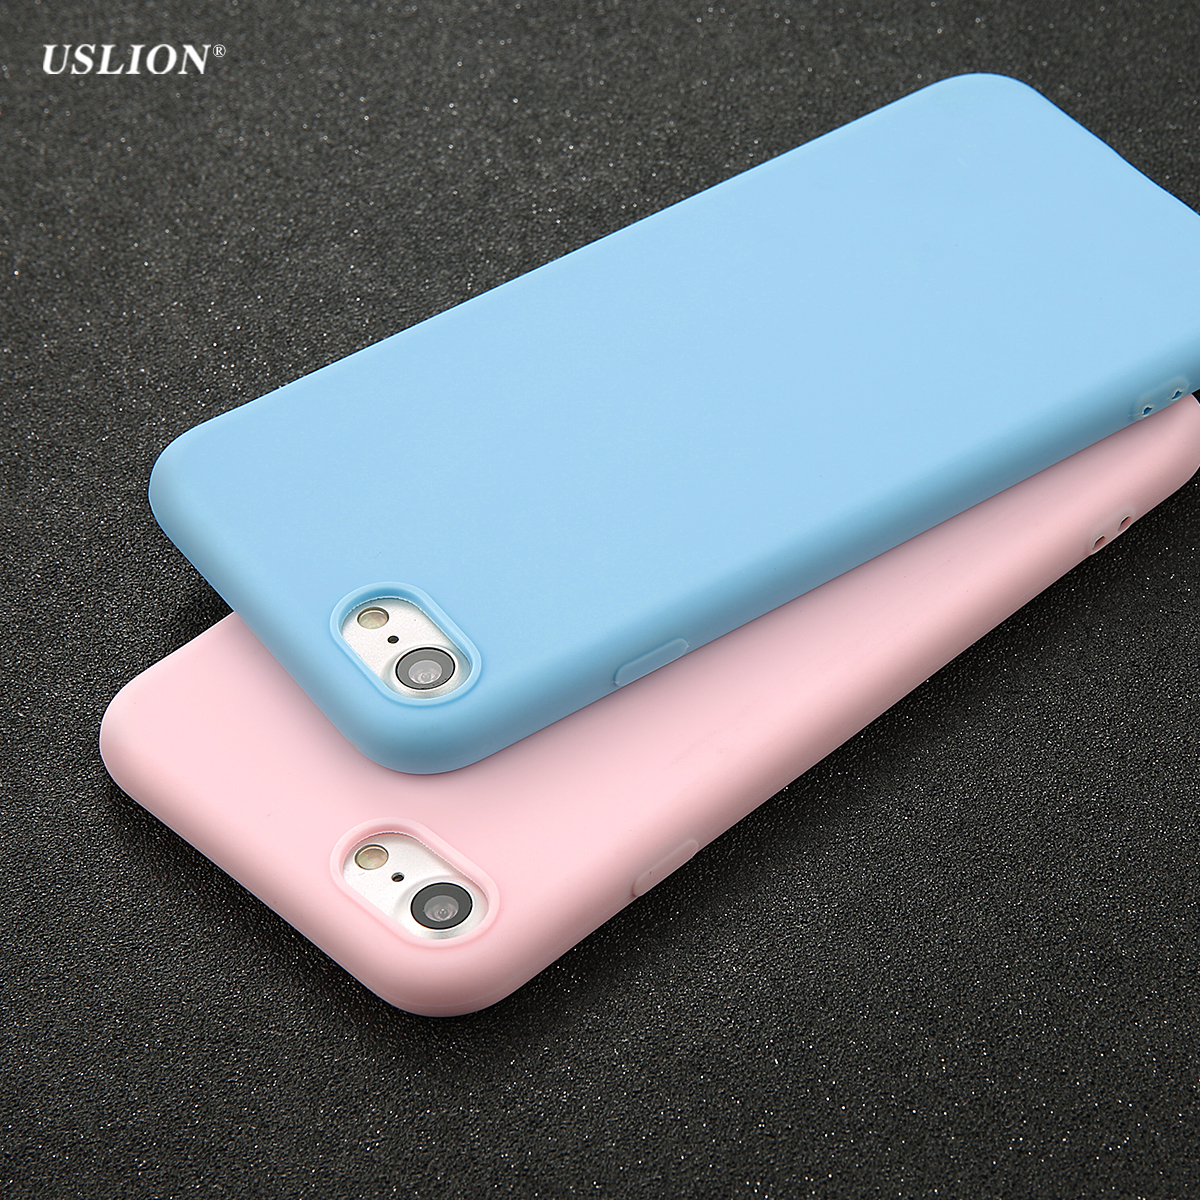 USLION Phone Case For iPhone 7 6 6s Plus 5 5s SE Simple Solid Color Ultrathin Soft TPU Cases Fashion Candy Color Back Cover Capa